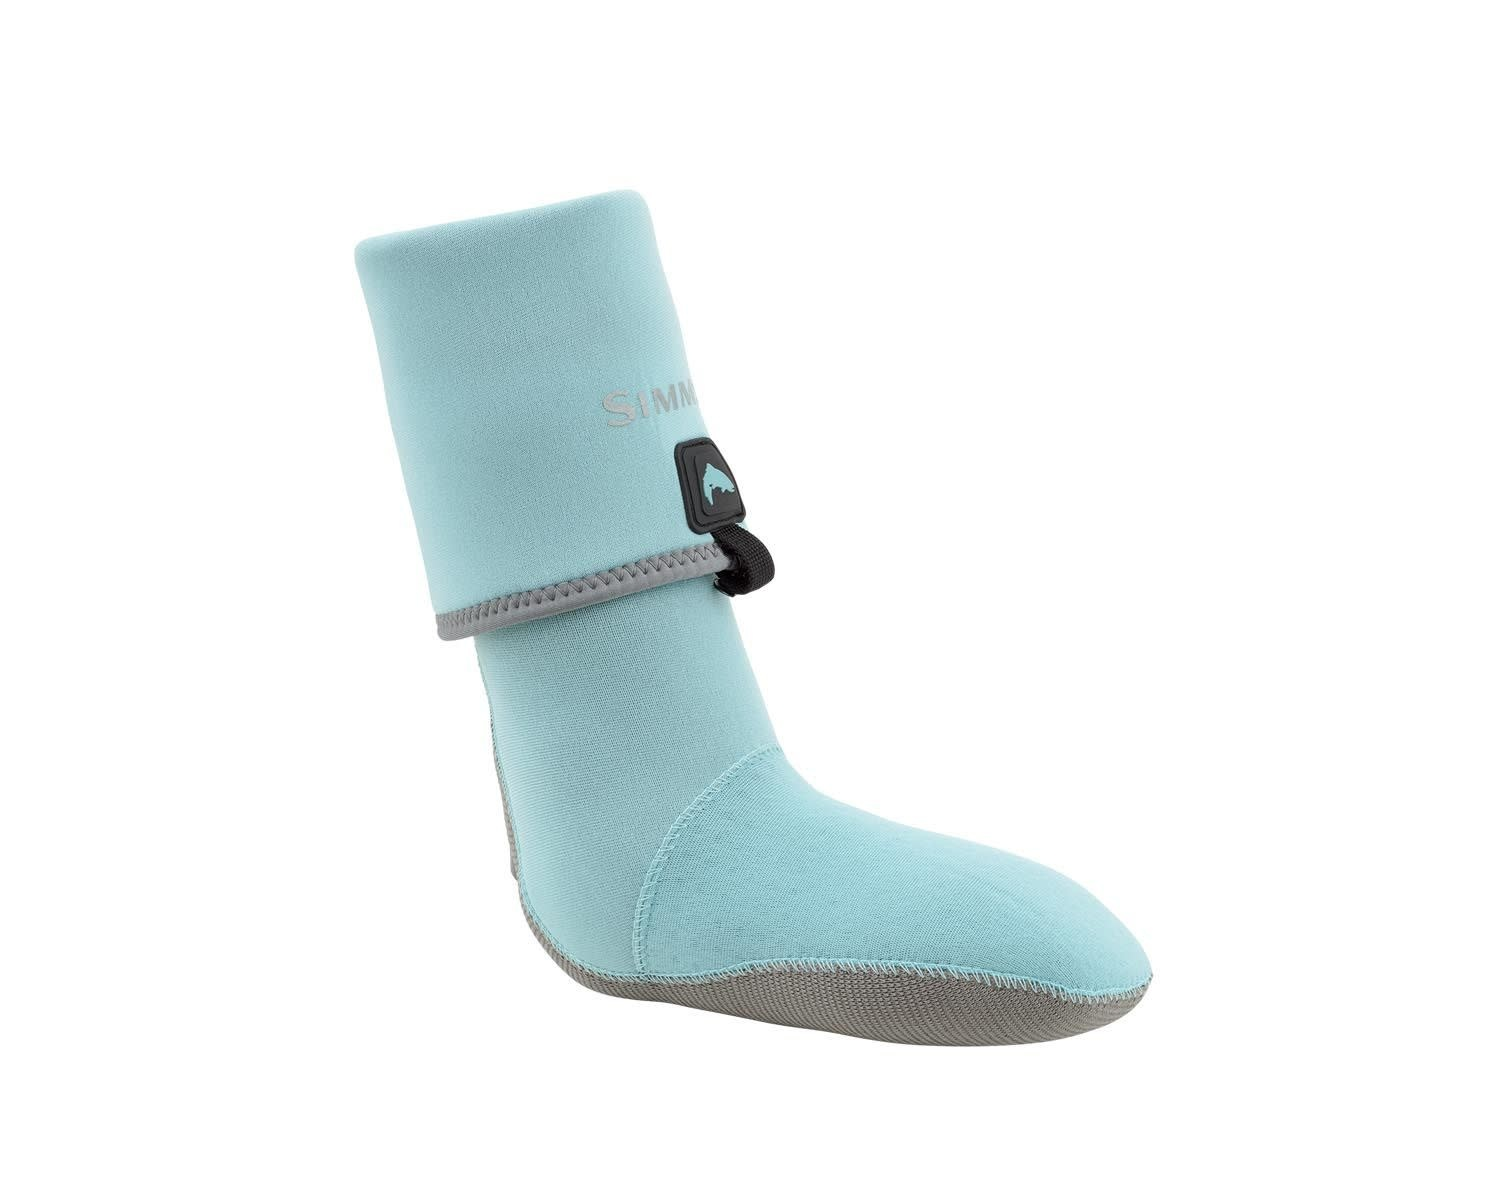 Simms Fishing Simms Womens Guard Socks